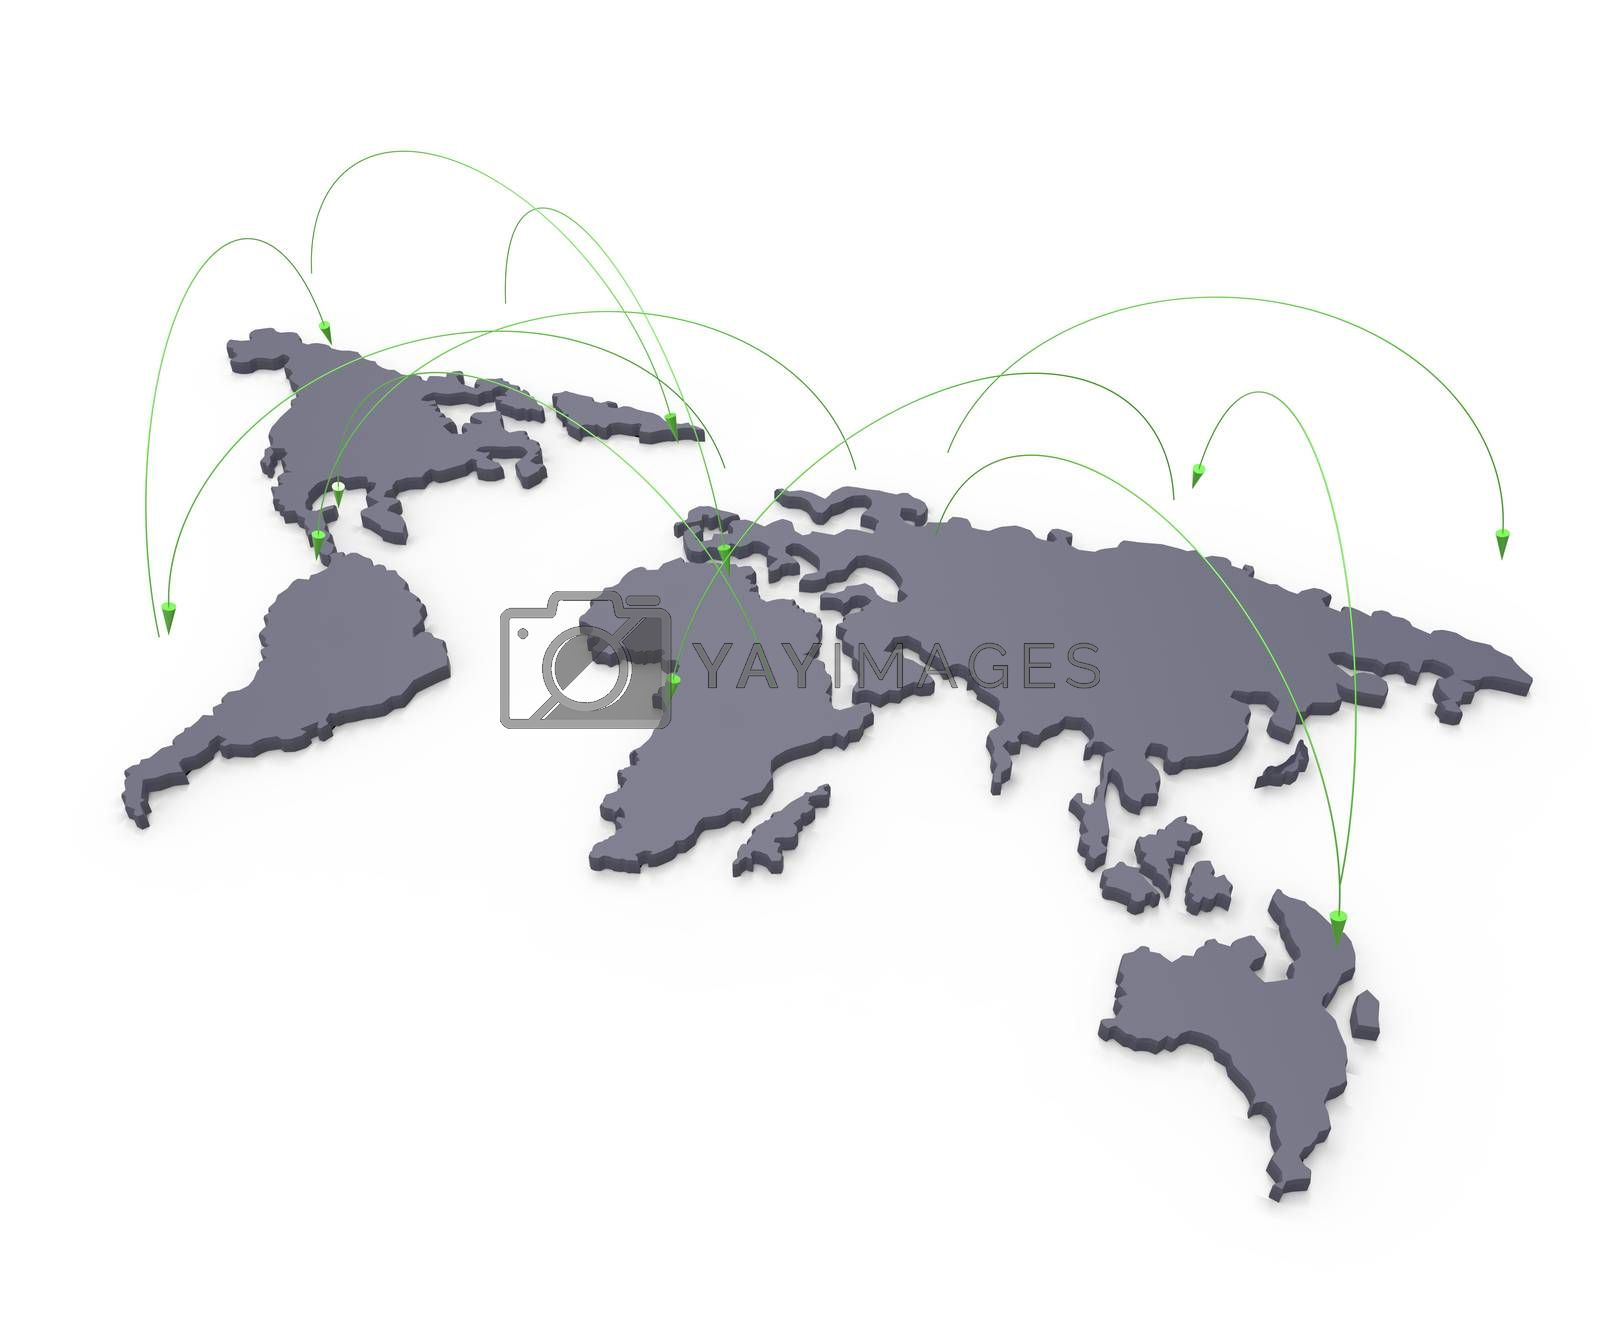 Royalty free image of social network human 3d on world map as concept by everythingpossible